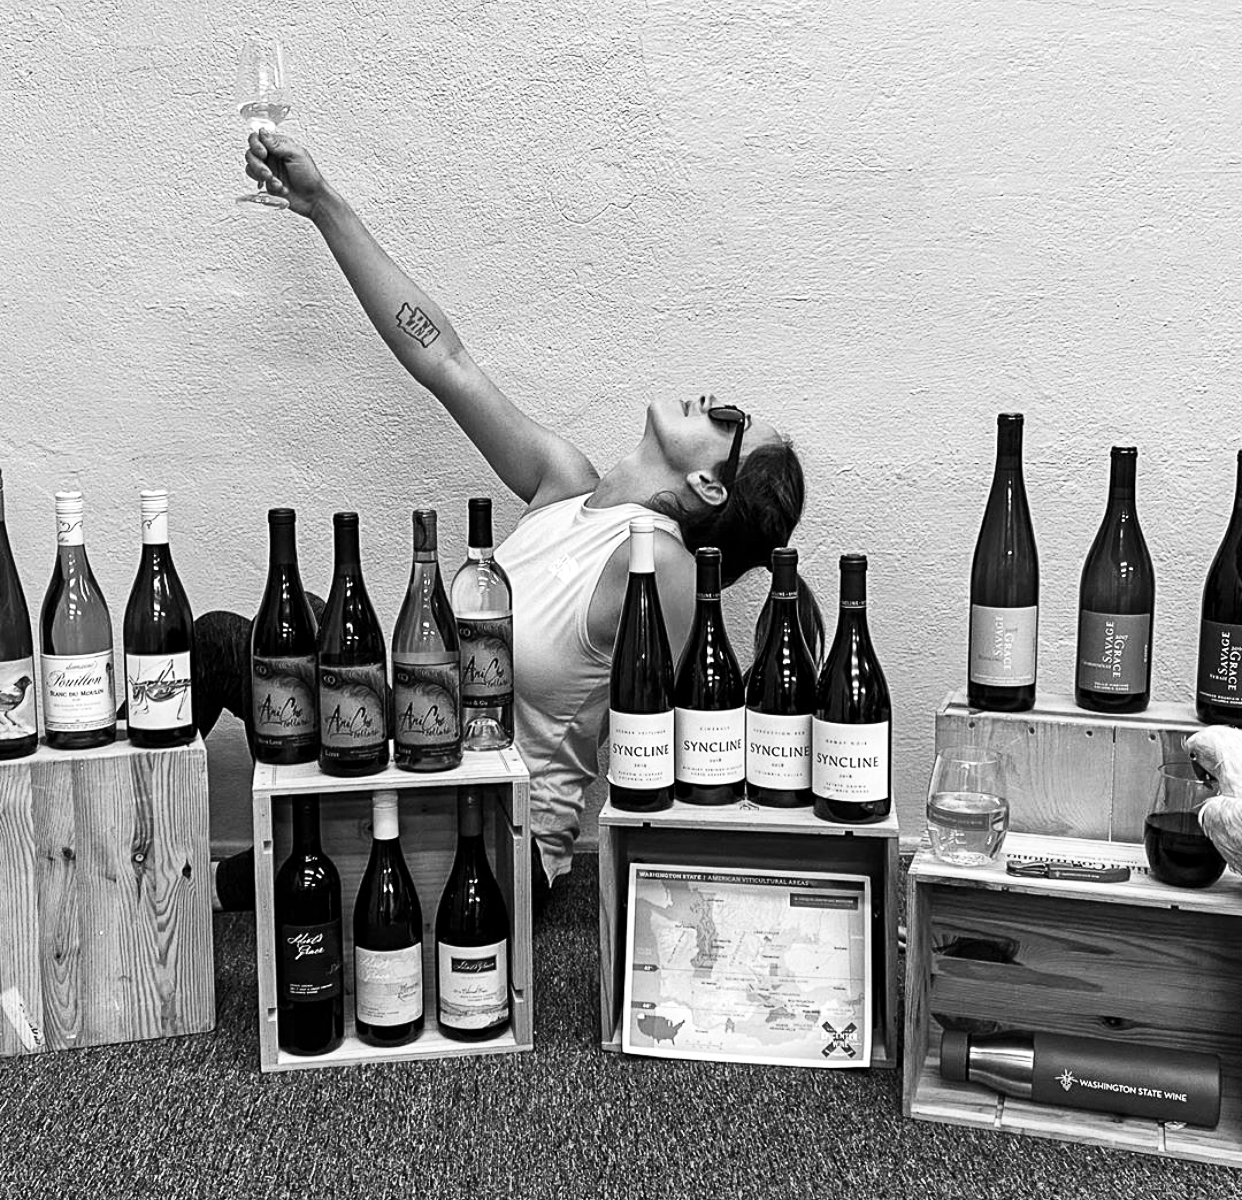 Black and white image of a woman holding a hand with a glass of wine in the air with her head back. She is behind wooden boxes with bottles of wine lined up on them.